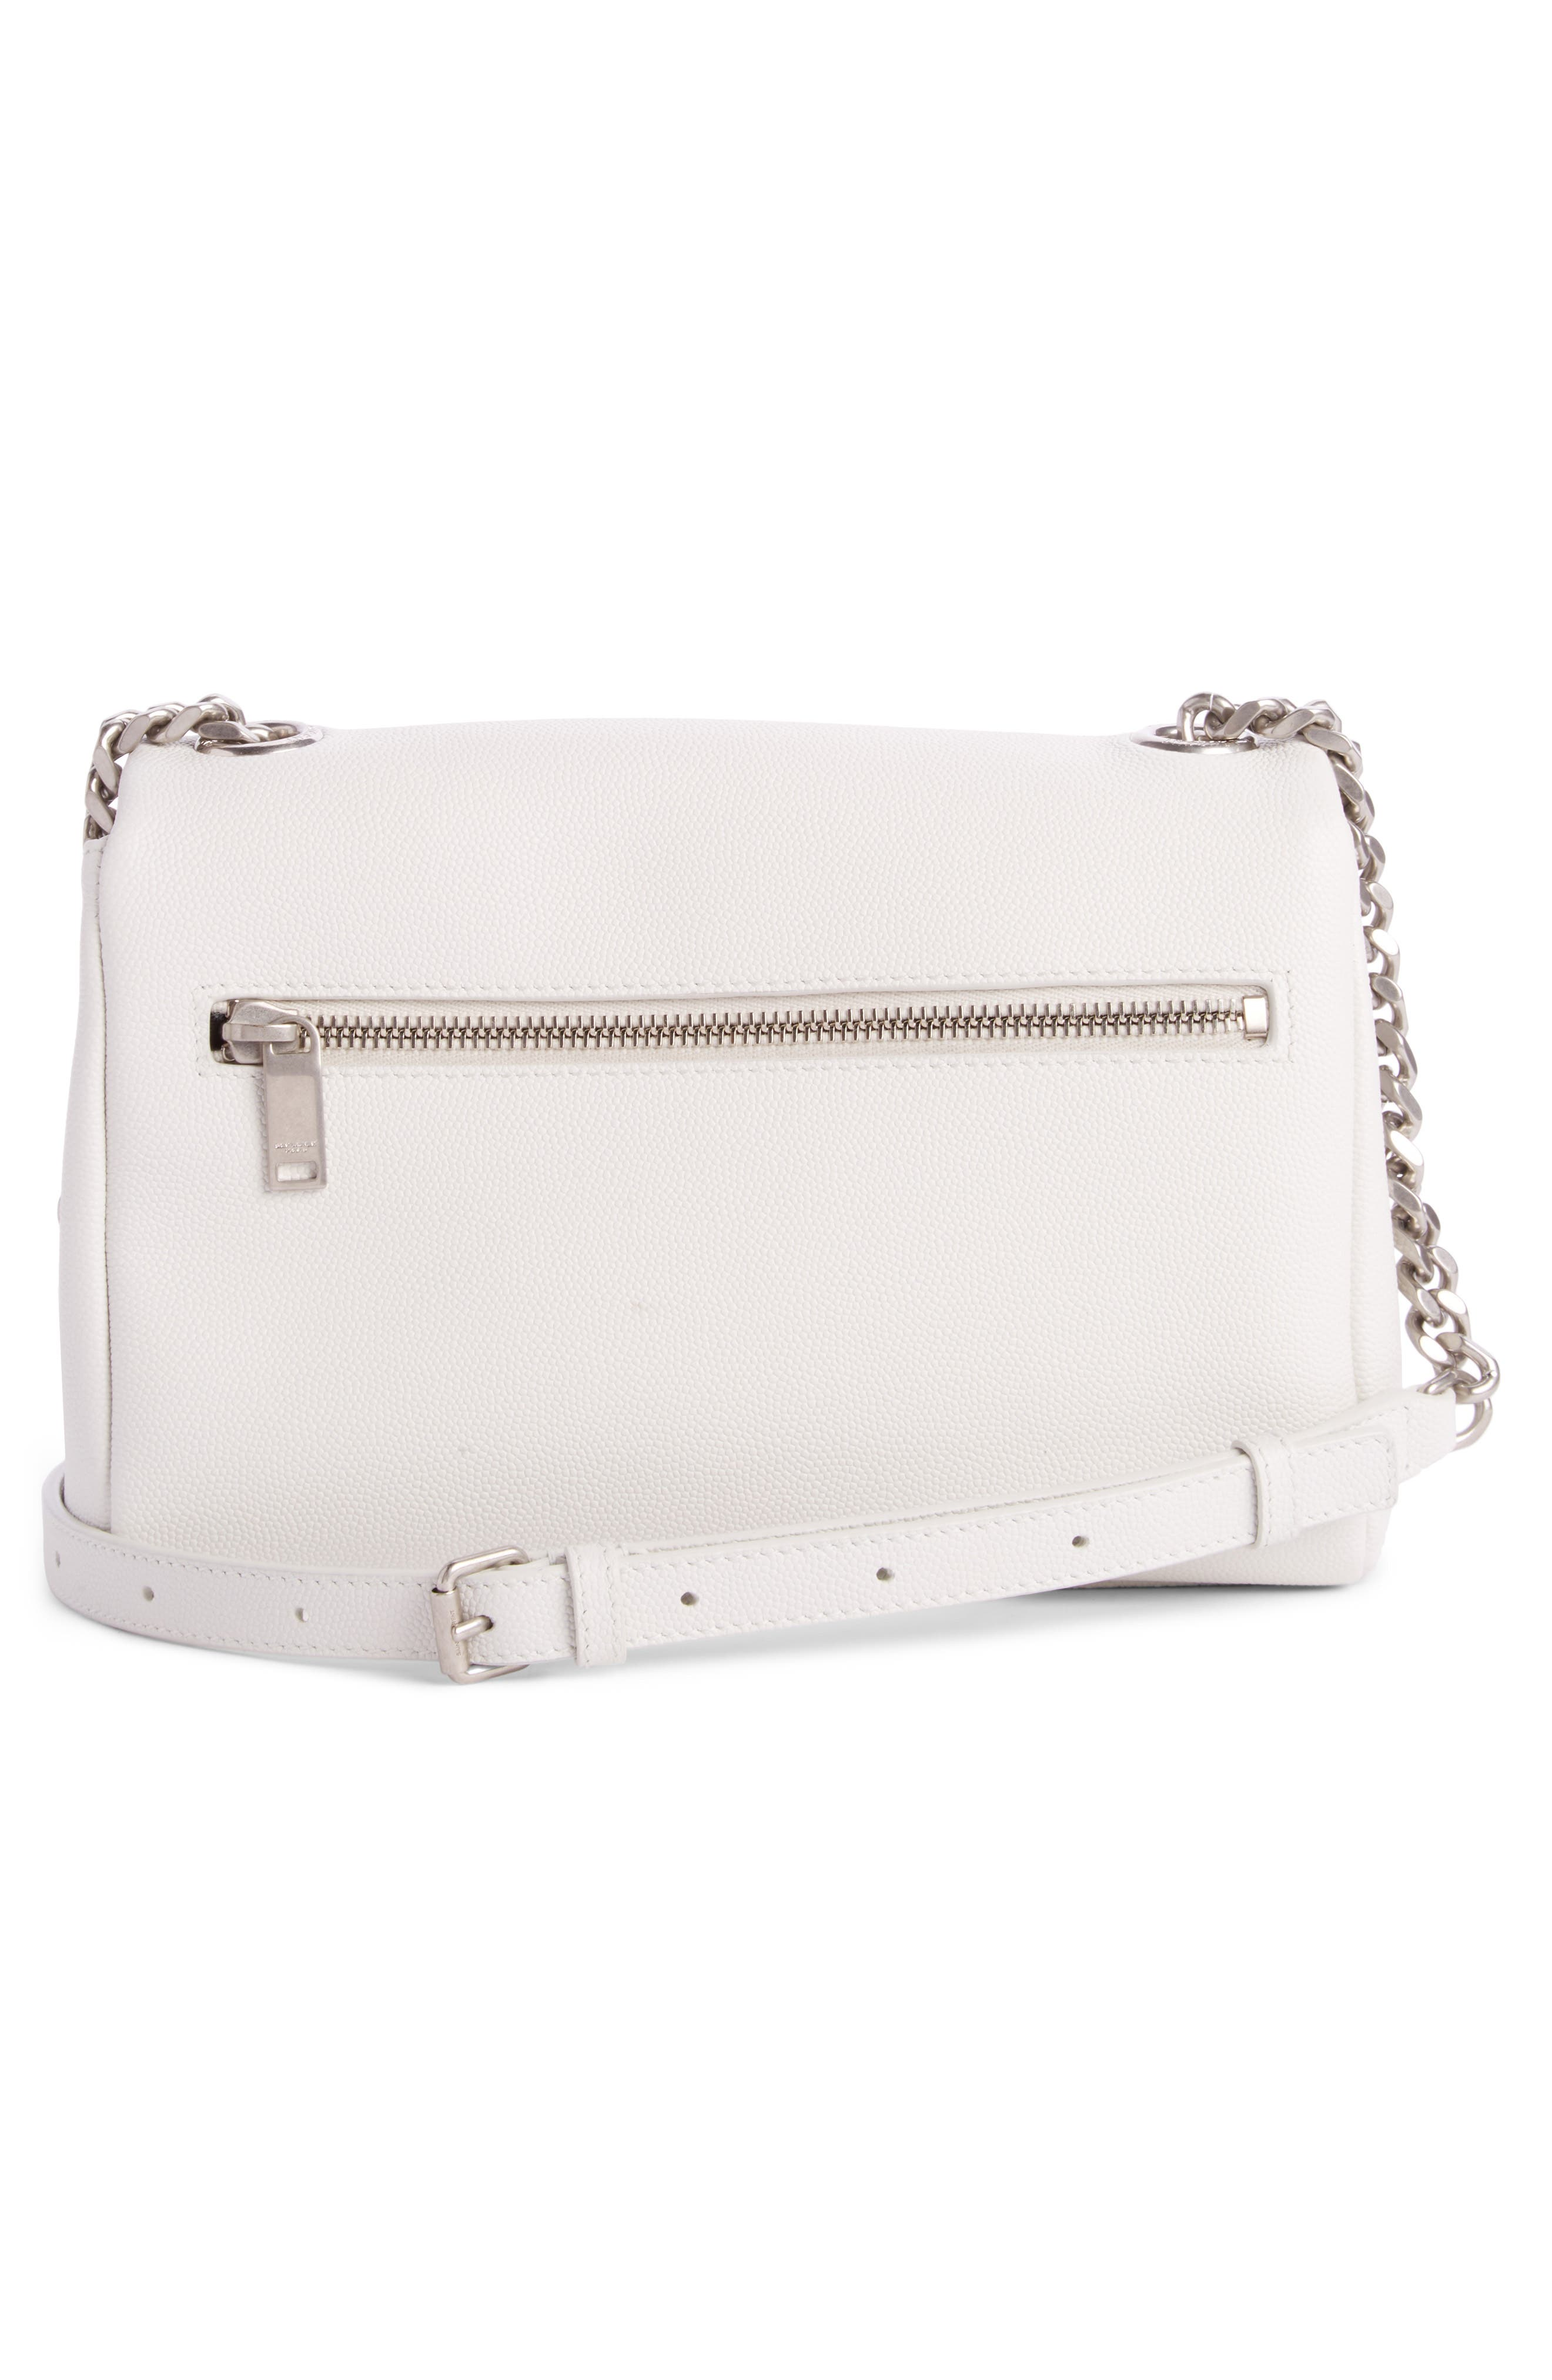 West Hollywood Calfskin Leather Messenger Bag,                             Alternate thumbnail 2, color,                             Pearl White